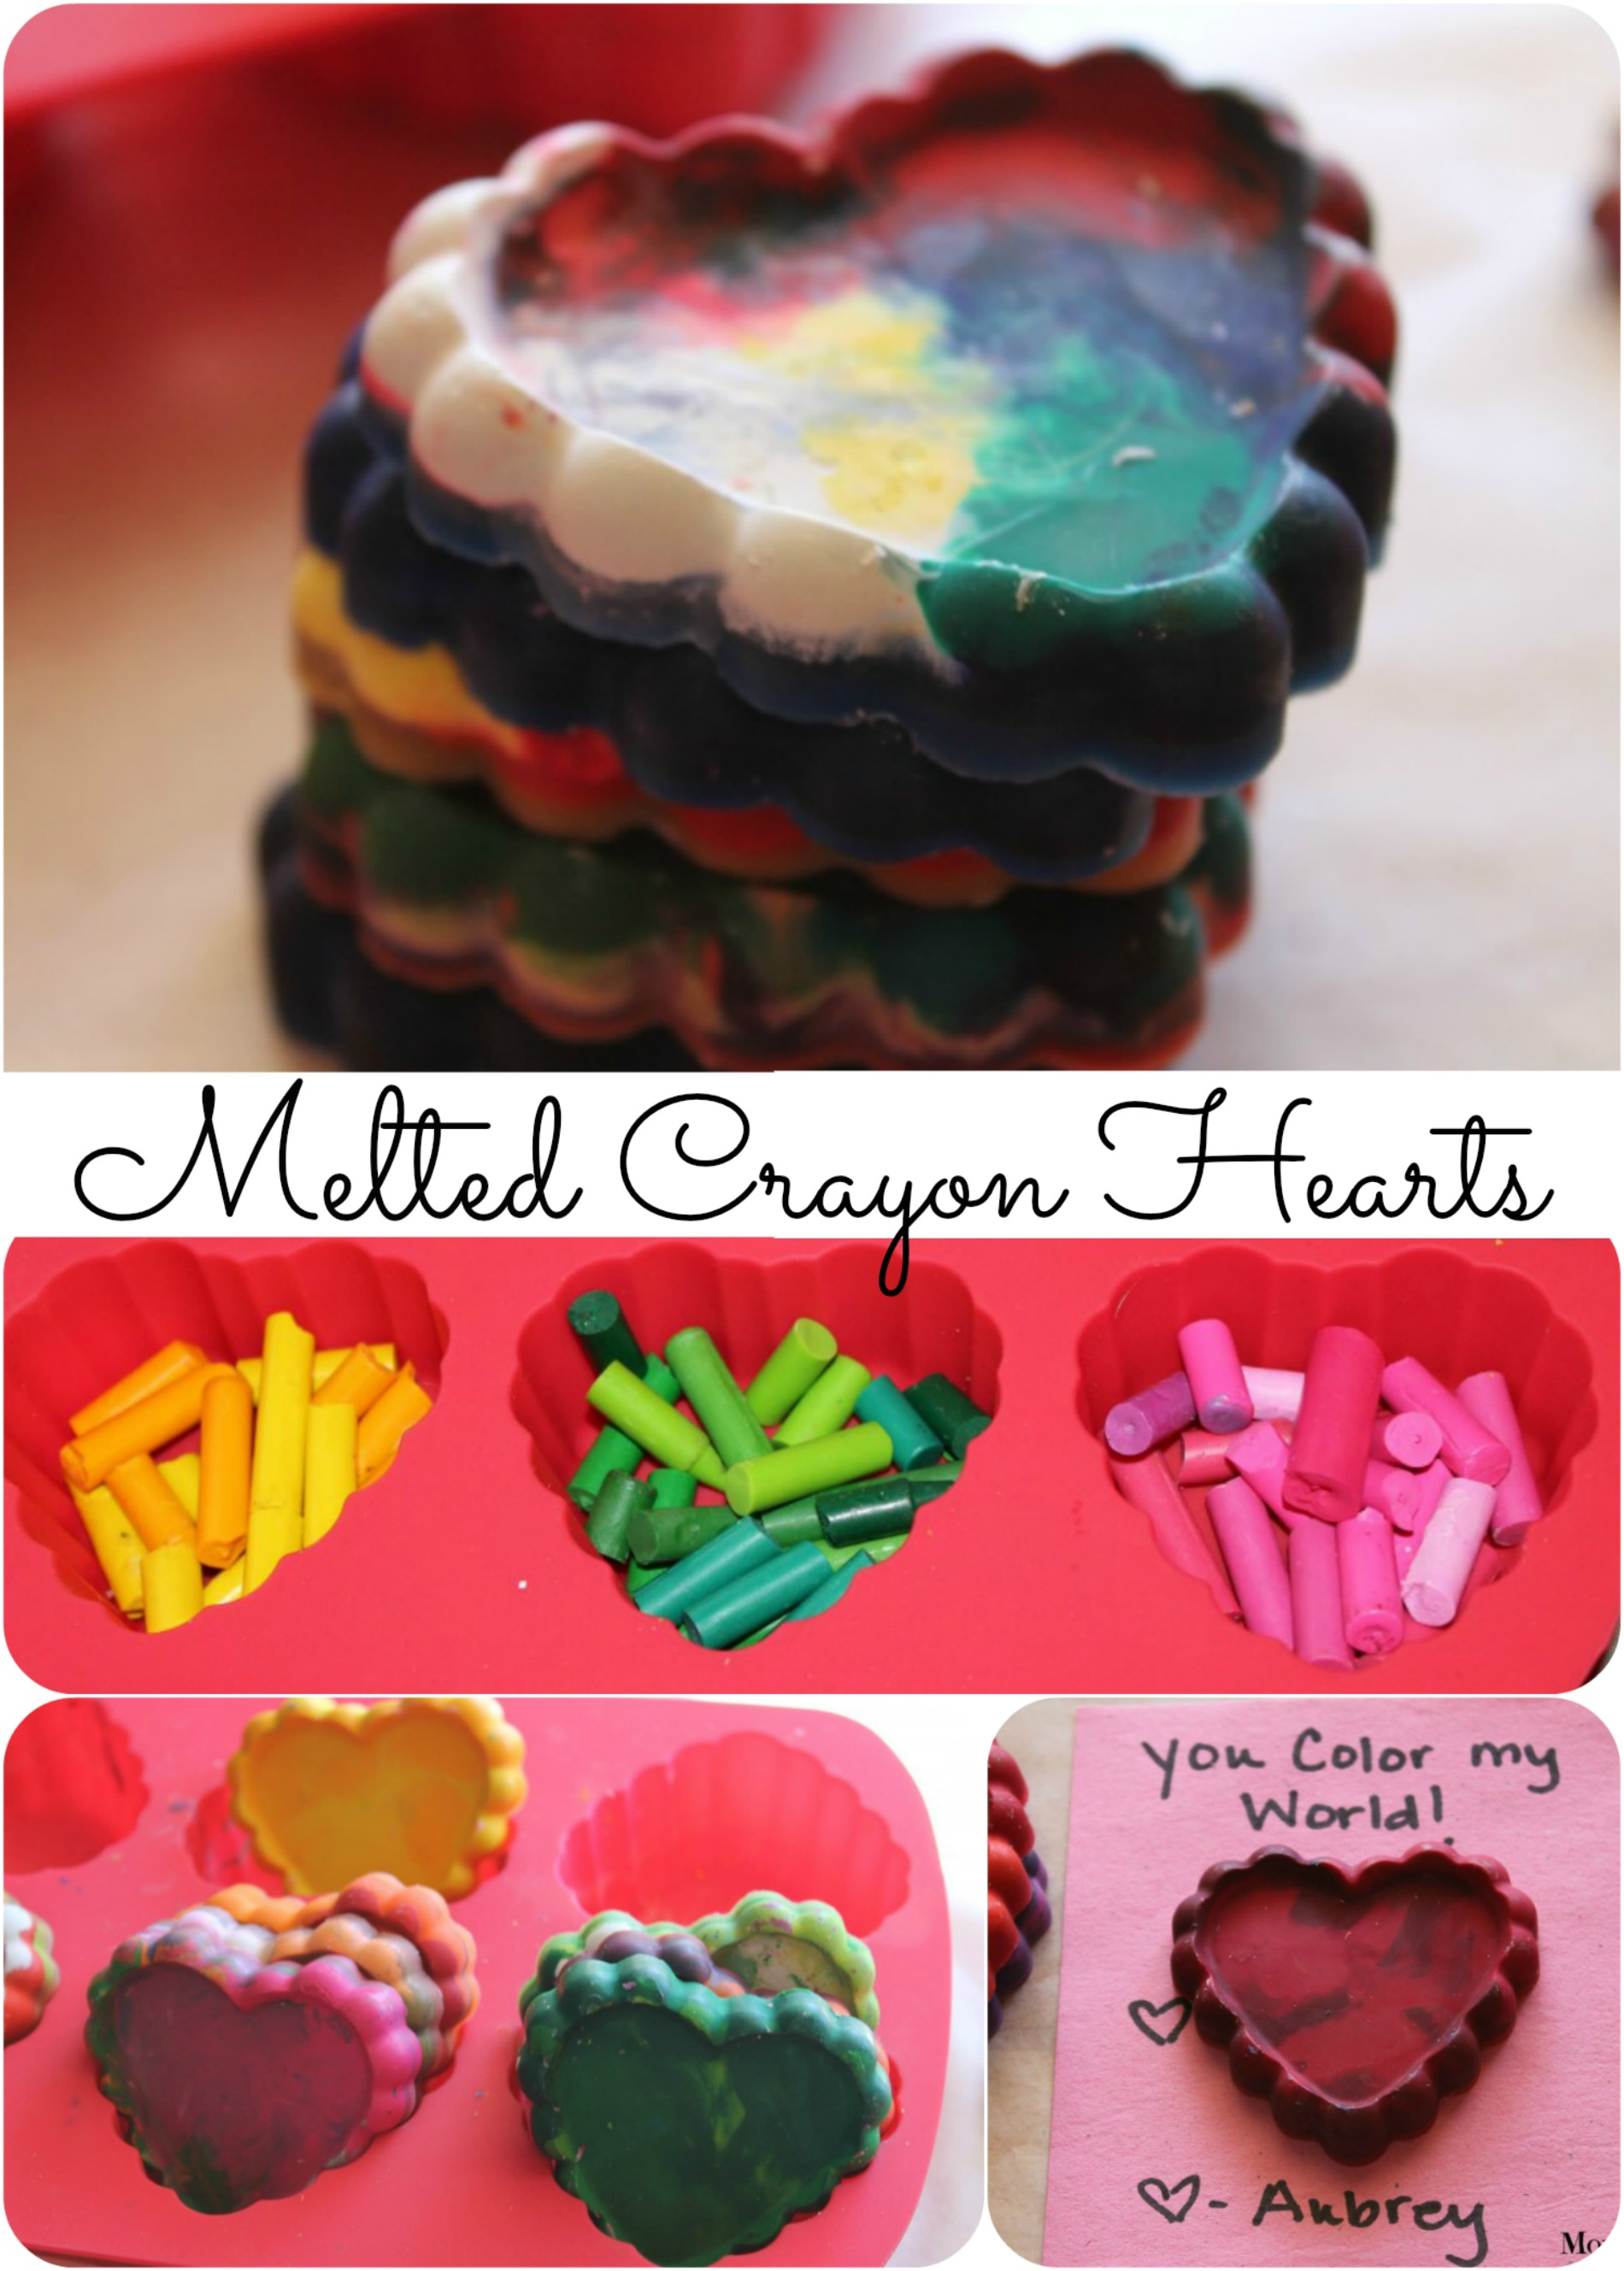 Melted Crayon Hearts Easy Kids Valentine's Day Craft   1900 x 2657 jpeg 567kB